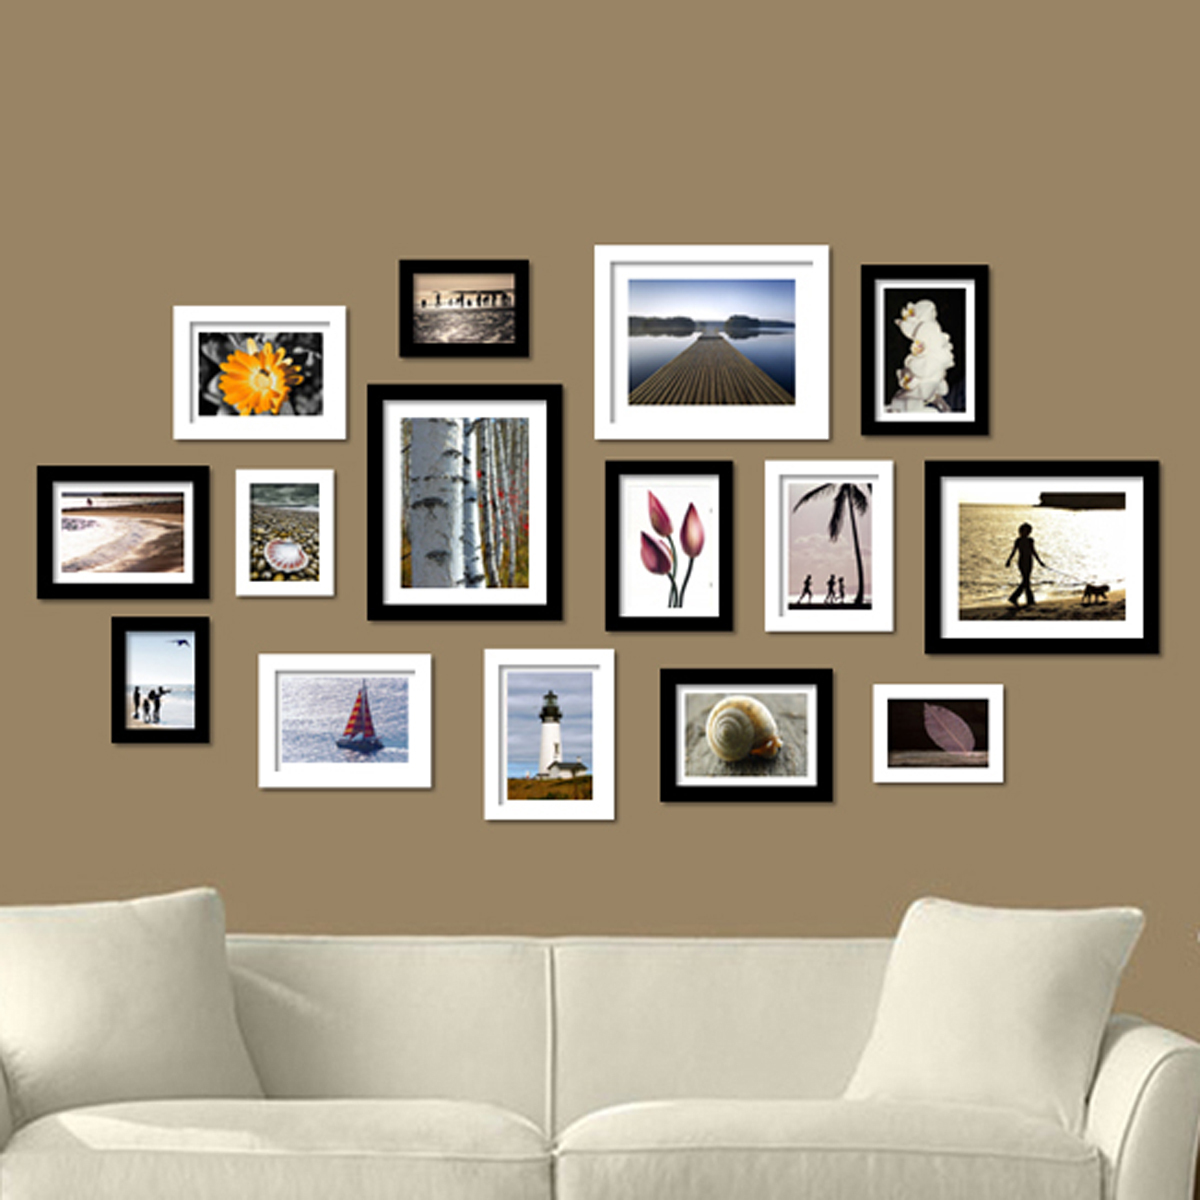 Comment habiller ses murs d co tissus le blog - Faire un mur de photos decoration ...